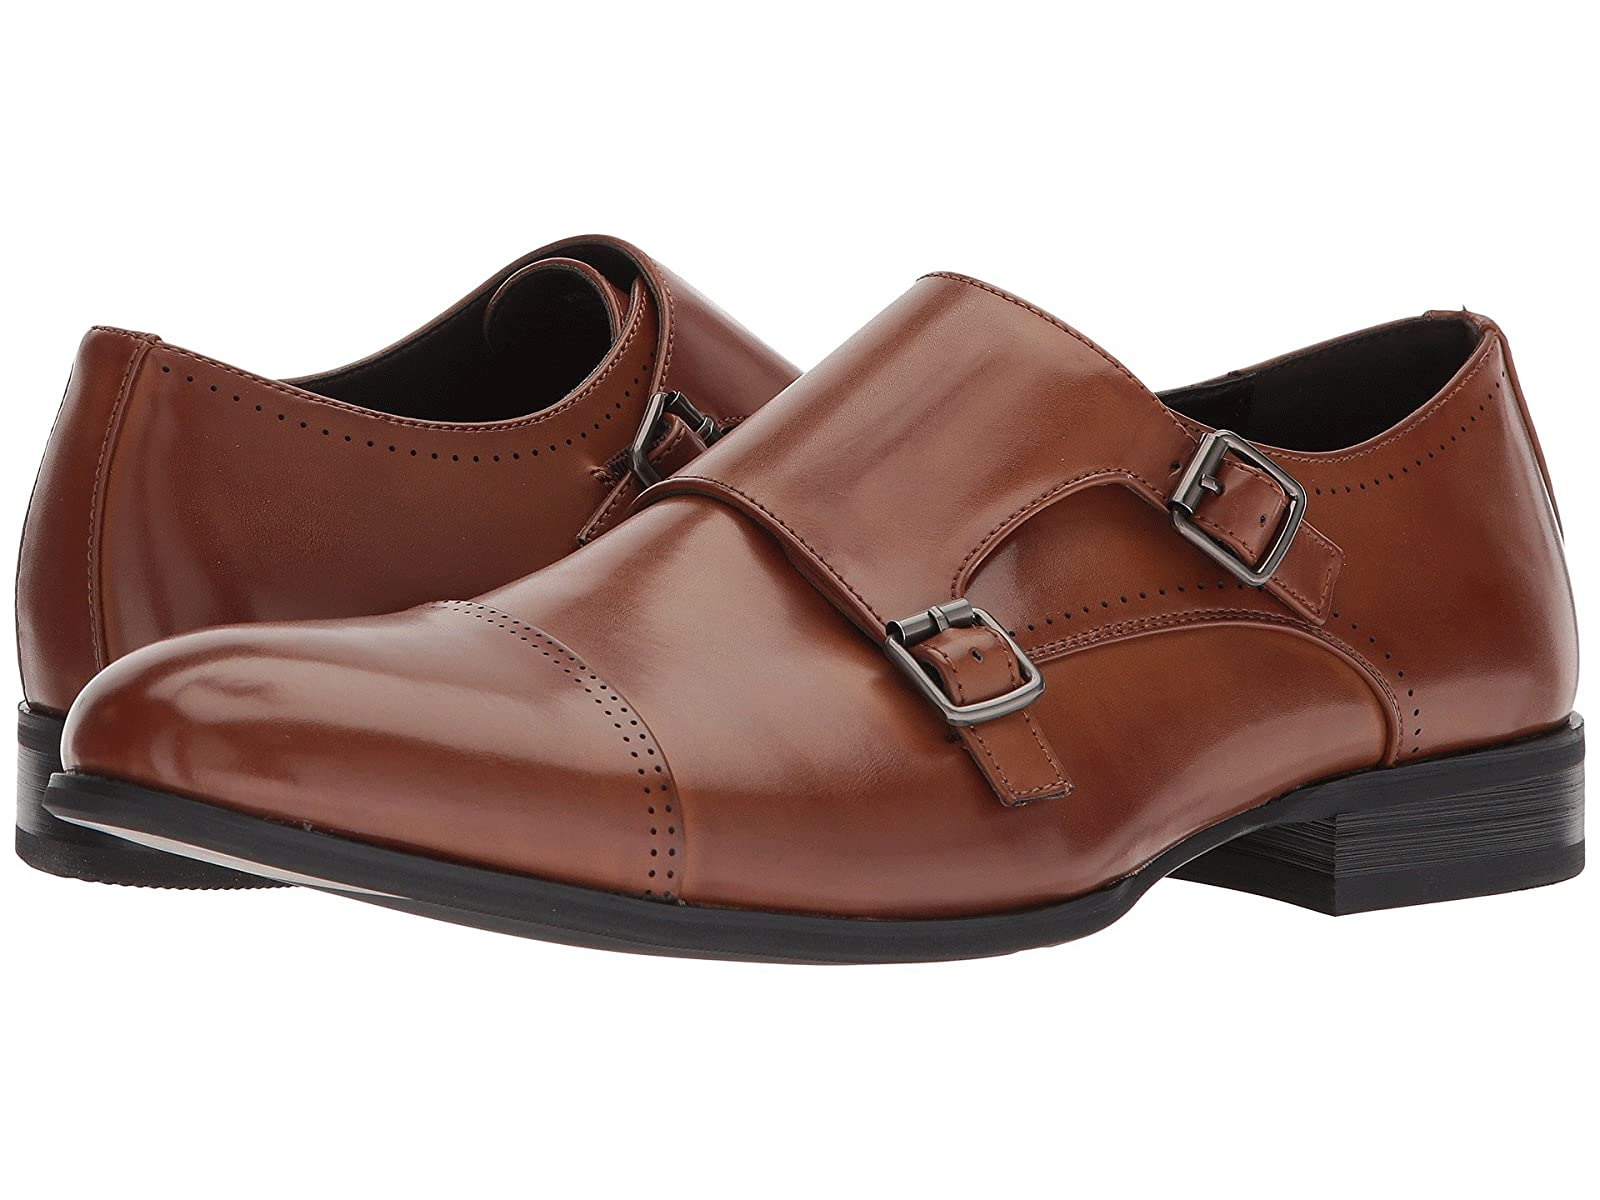 Kenneth Cole Unlisted Eel MonkCheap and distinctive eye-catching shoes